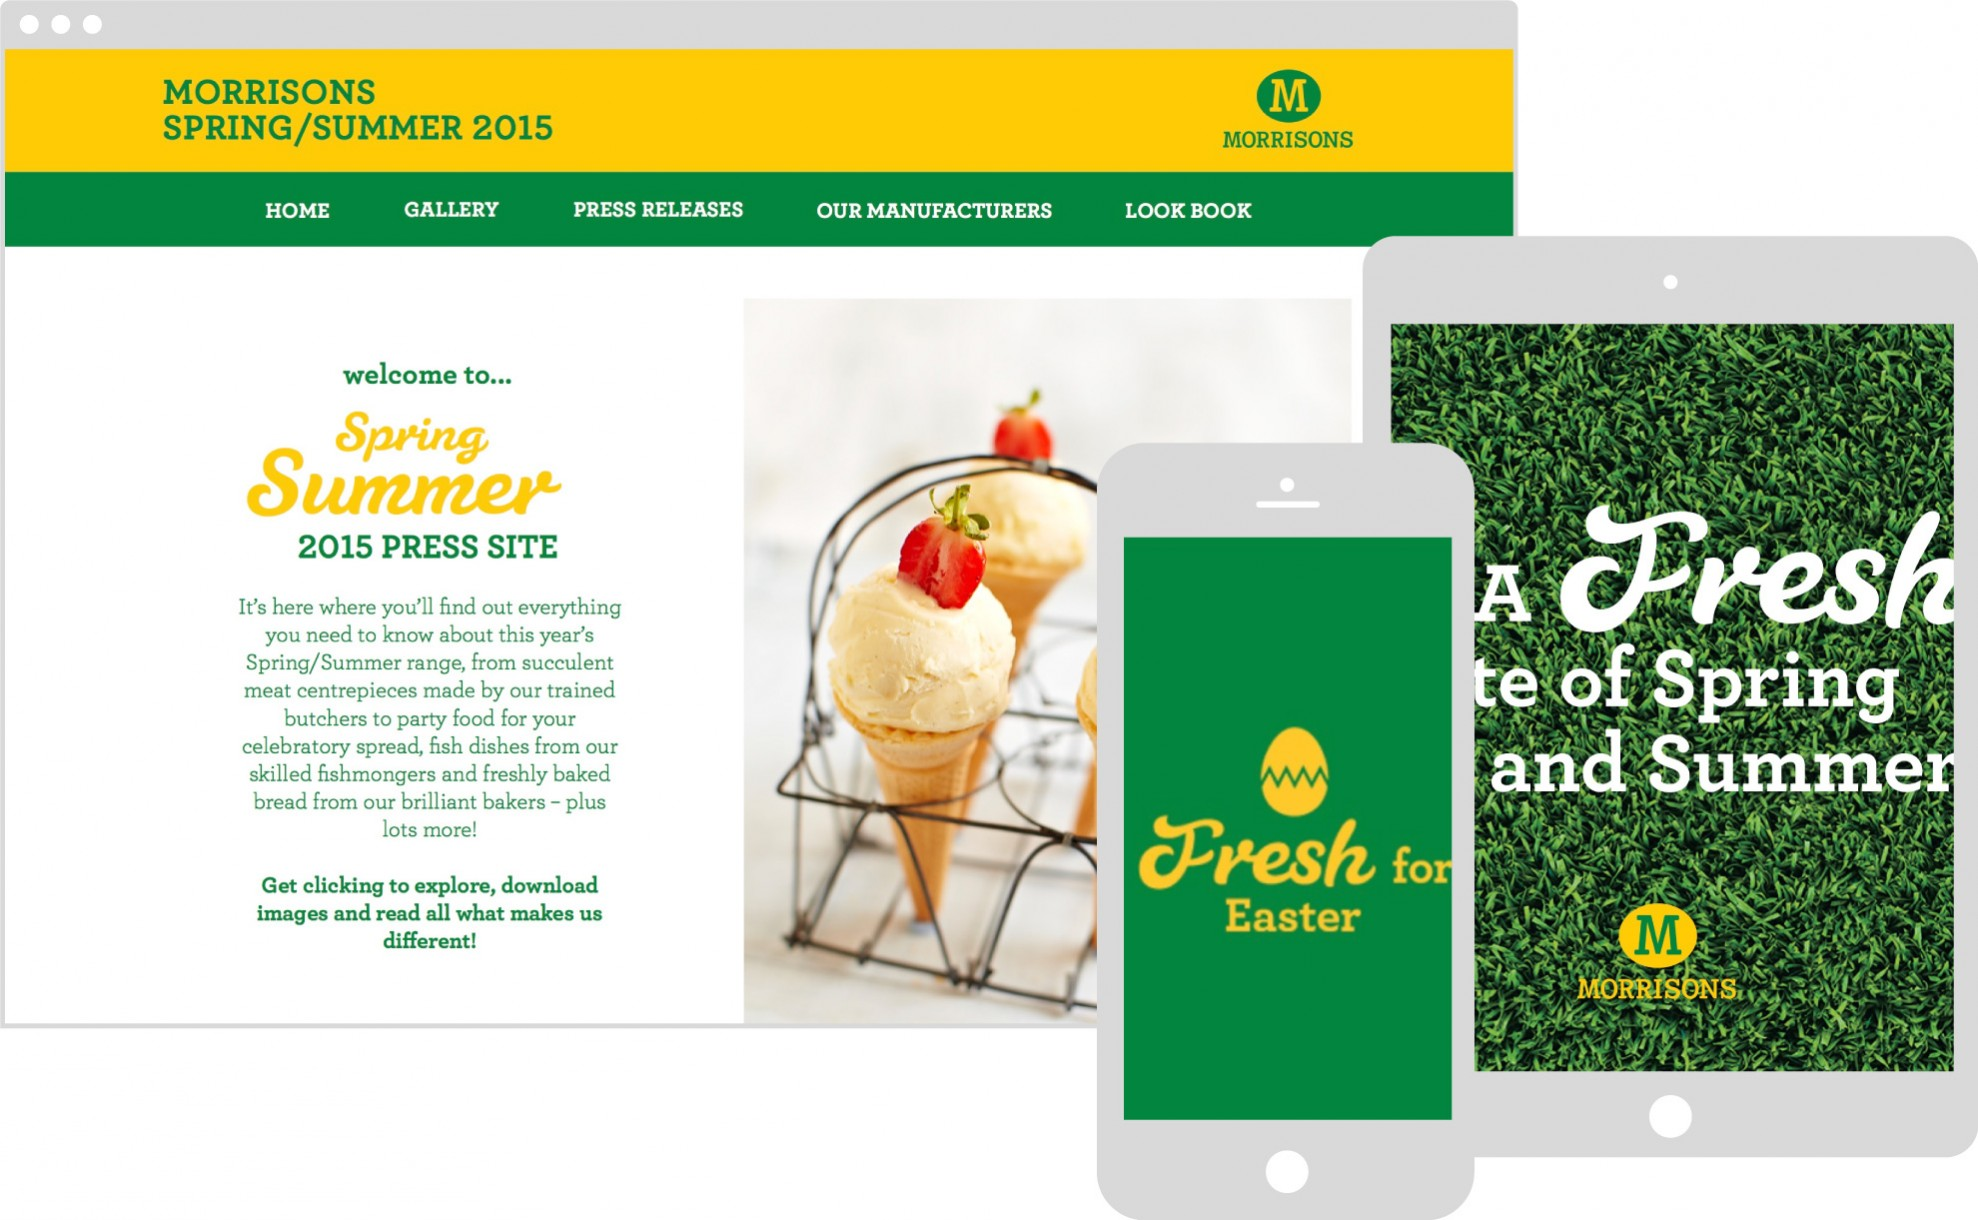 Morrisons website design on multiple devices